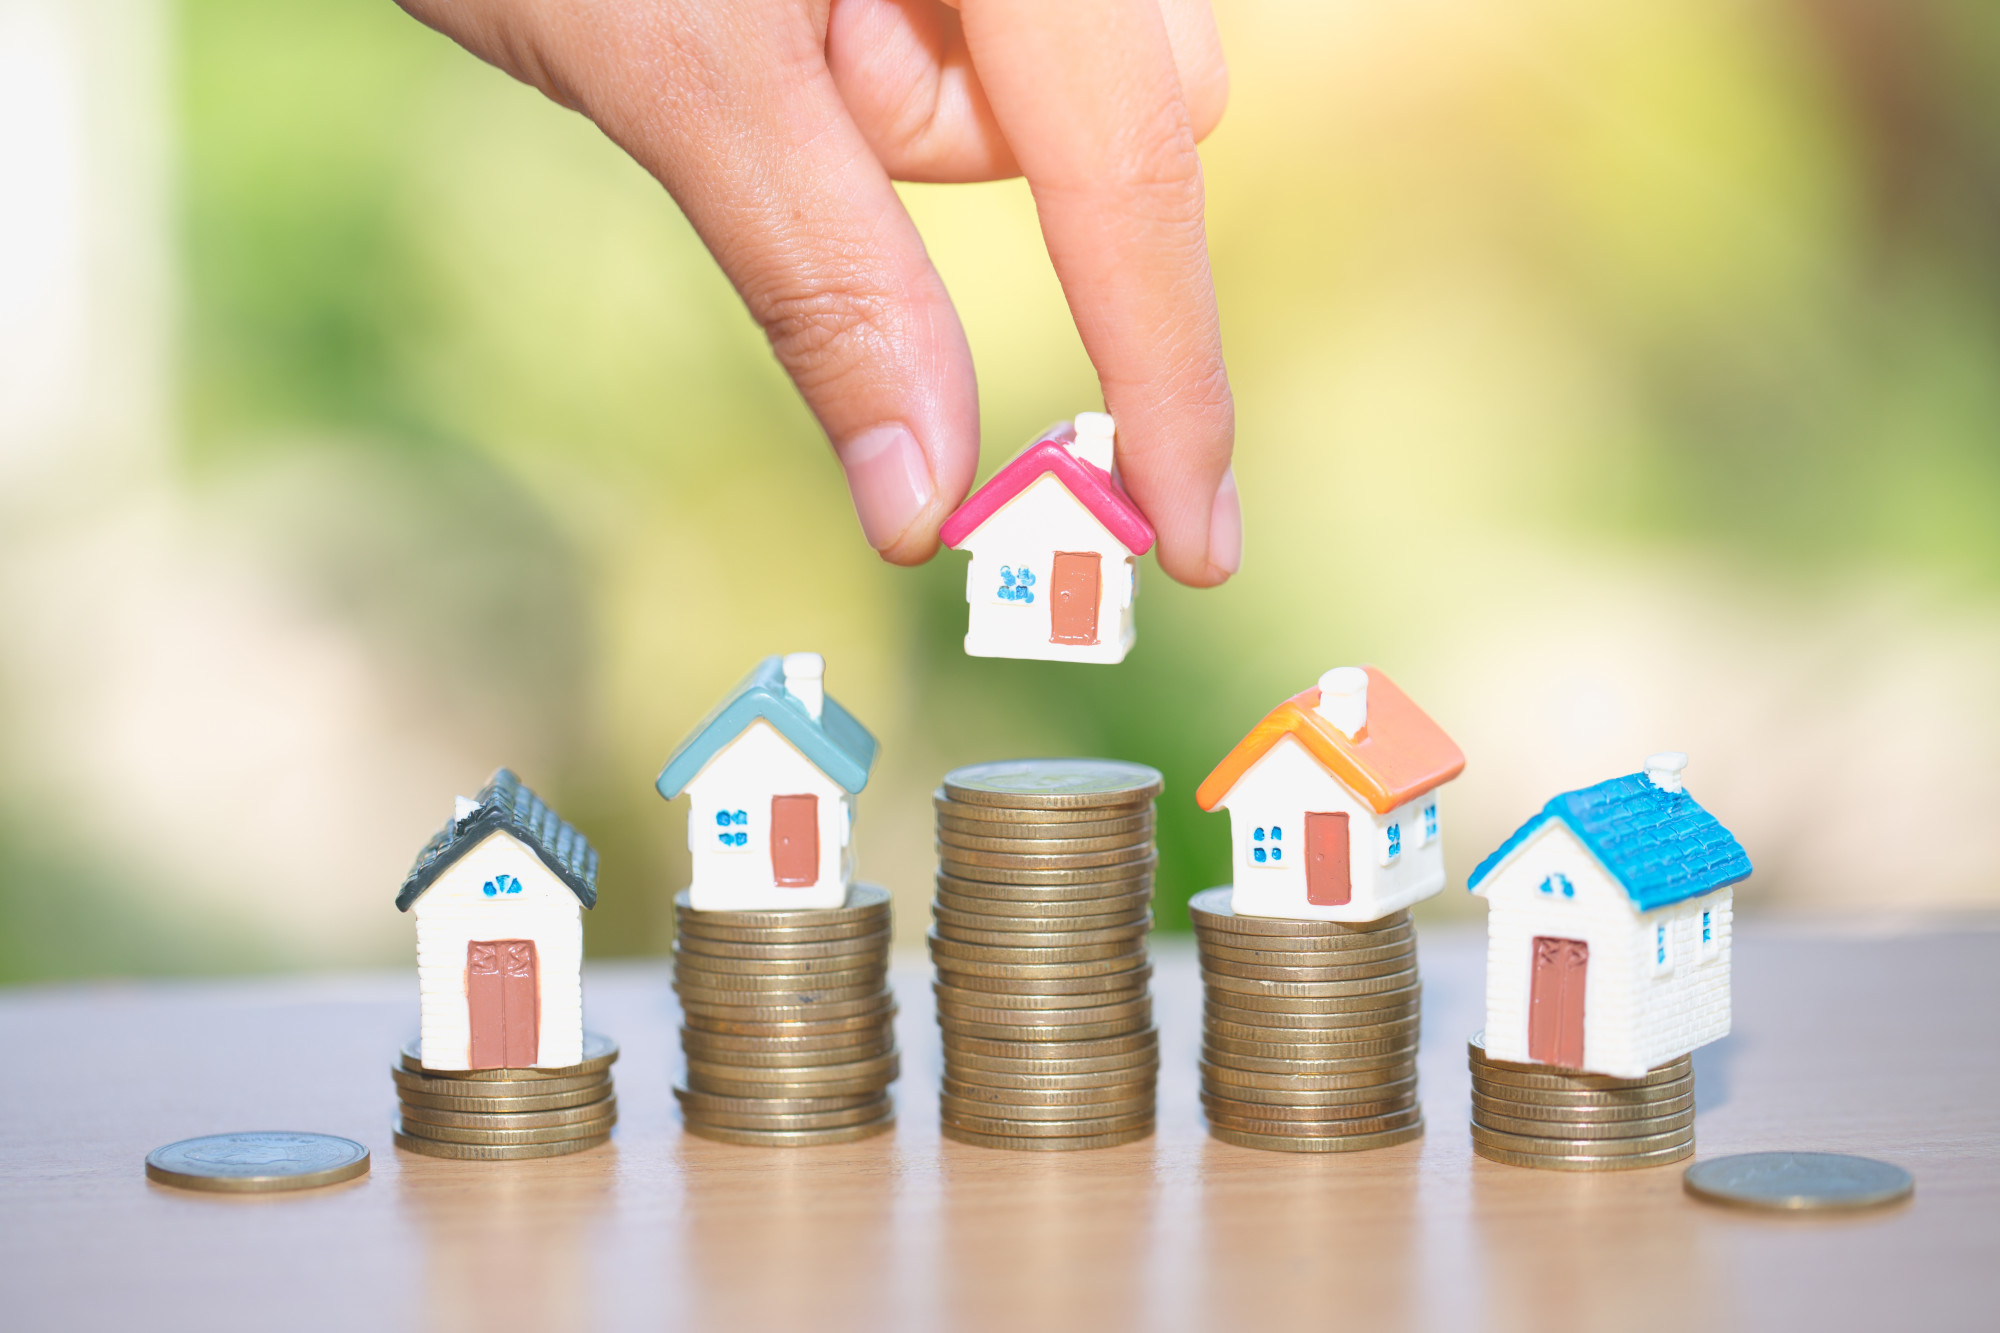 How to Increase Home Value: 7 Top Tips